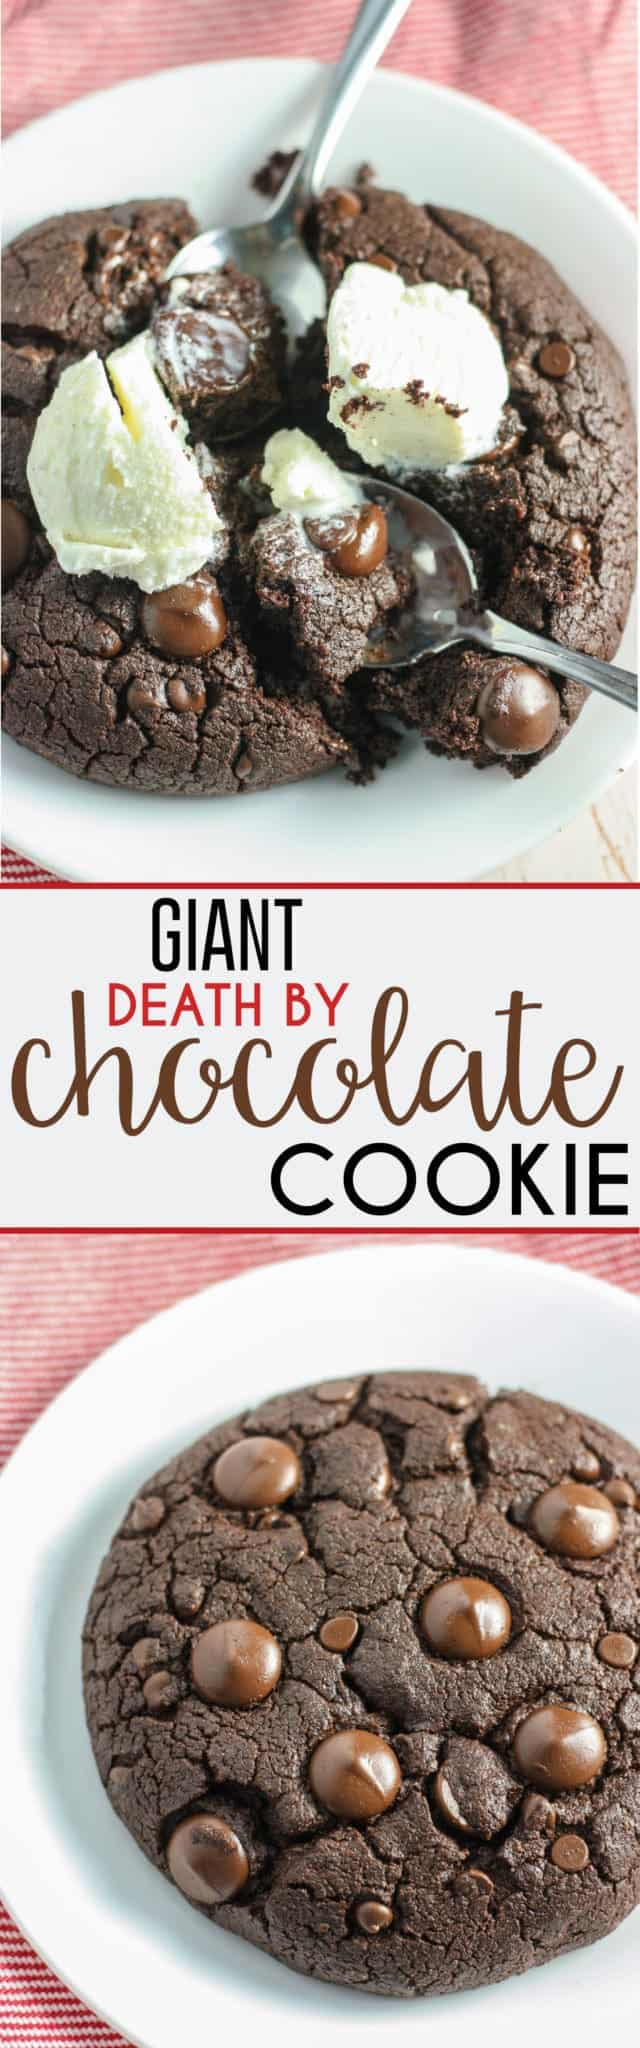 Giant Death by Chocolate Cookie [dairy-free] • Fit Mitten Kitchen